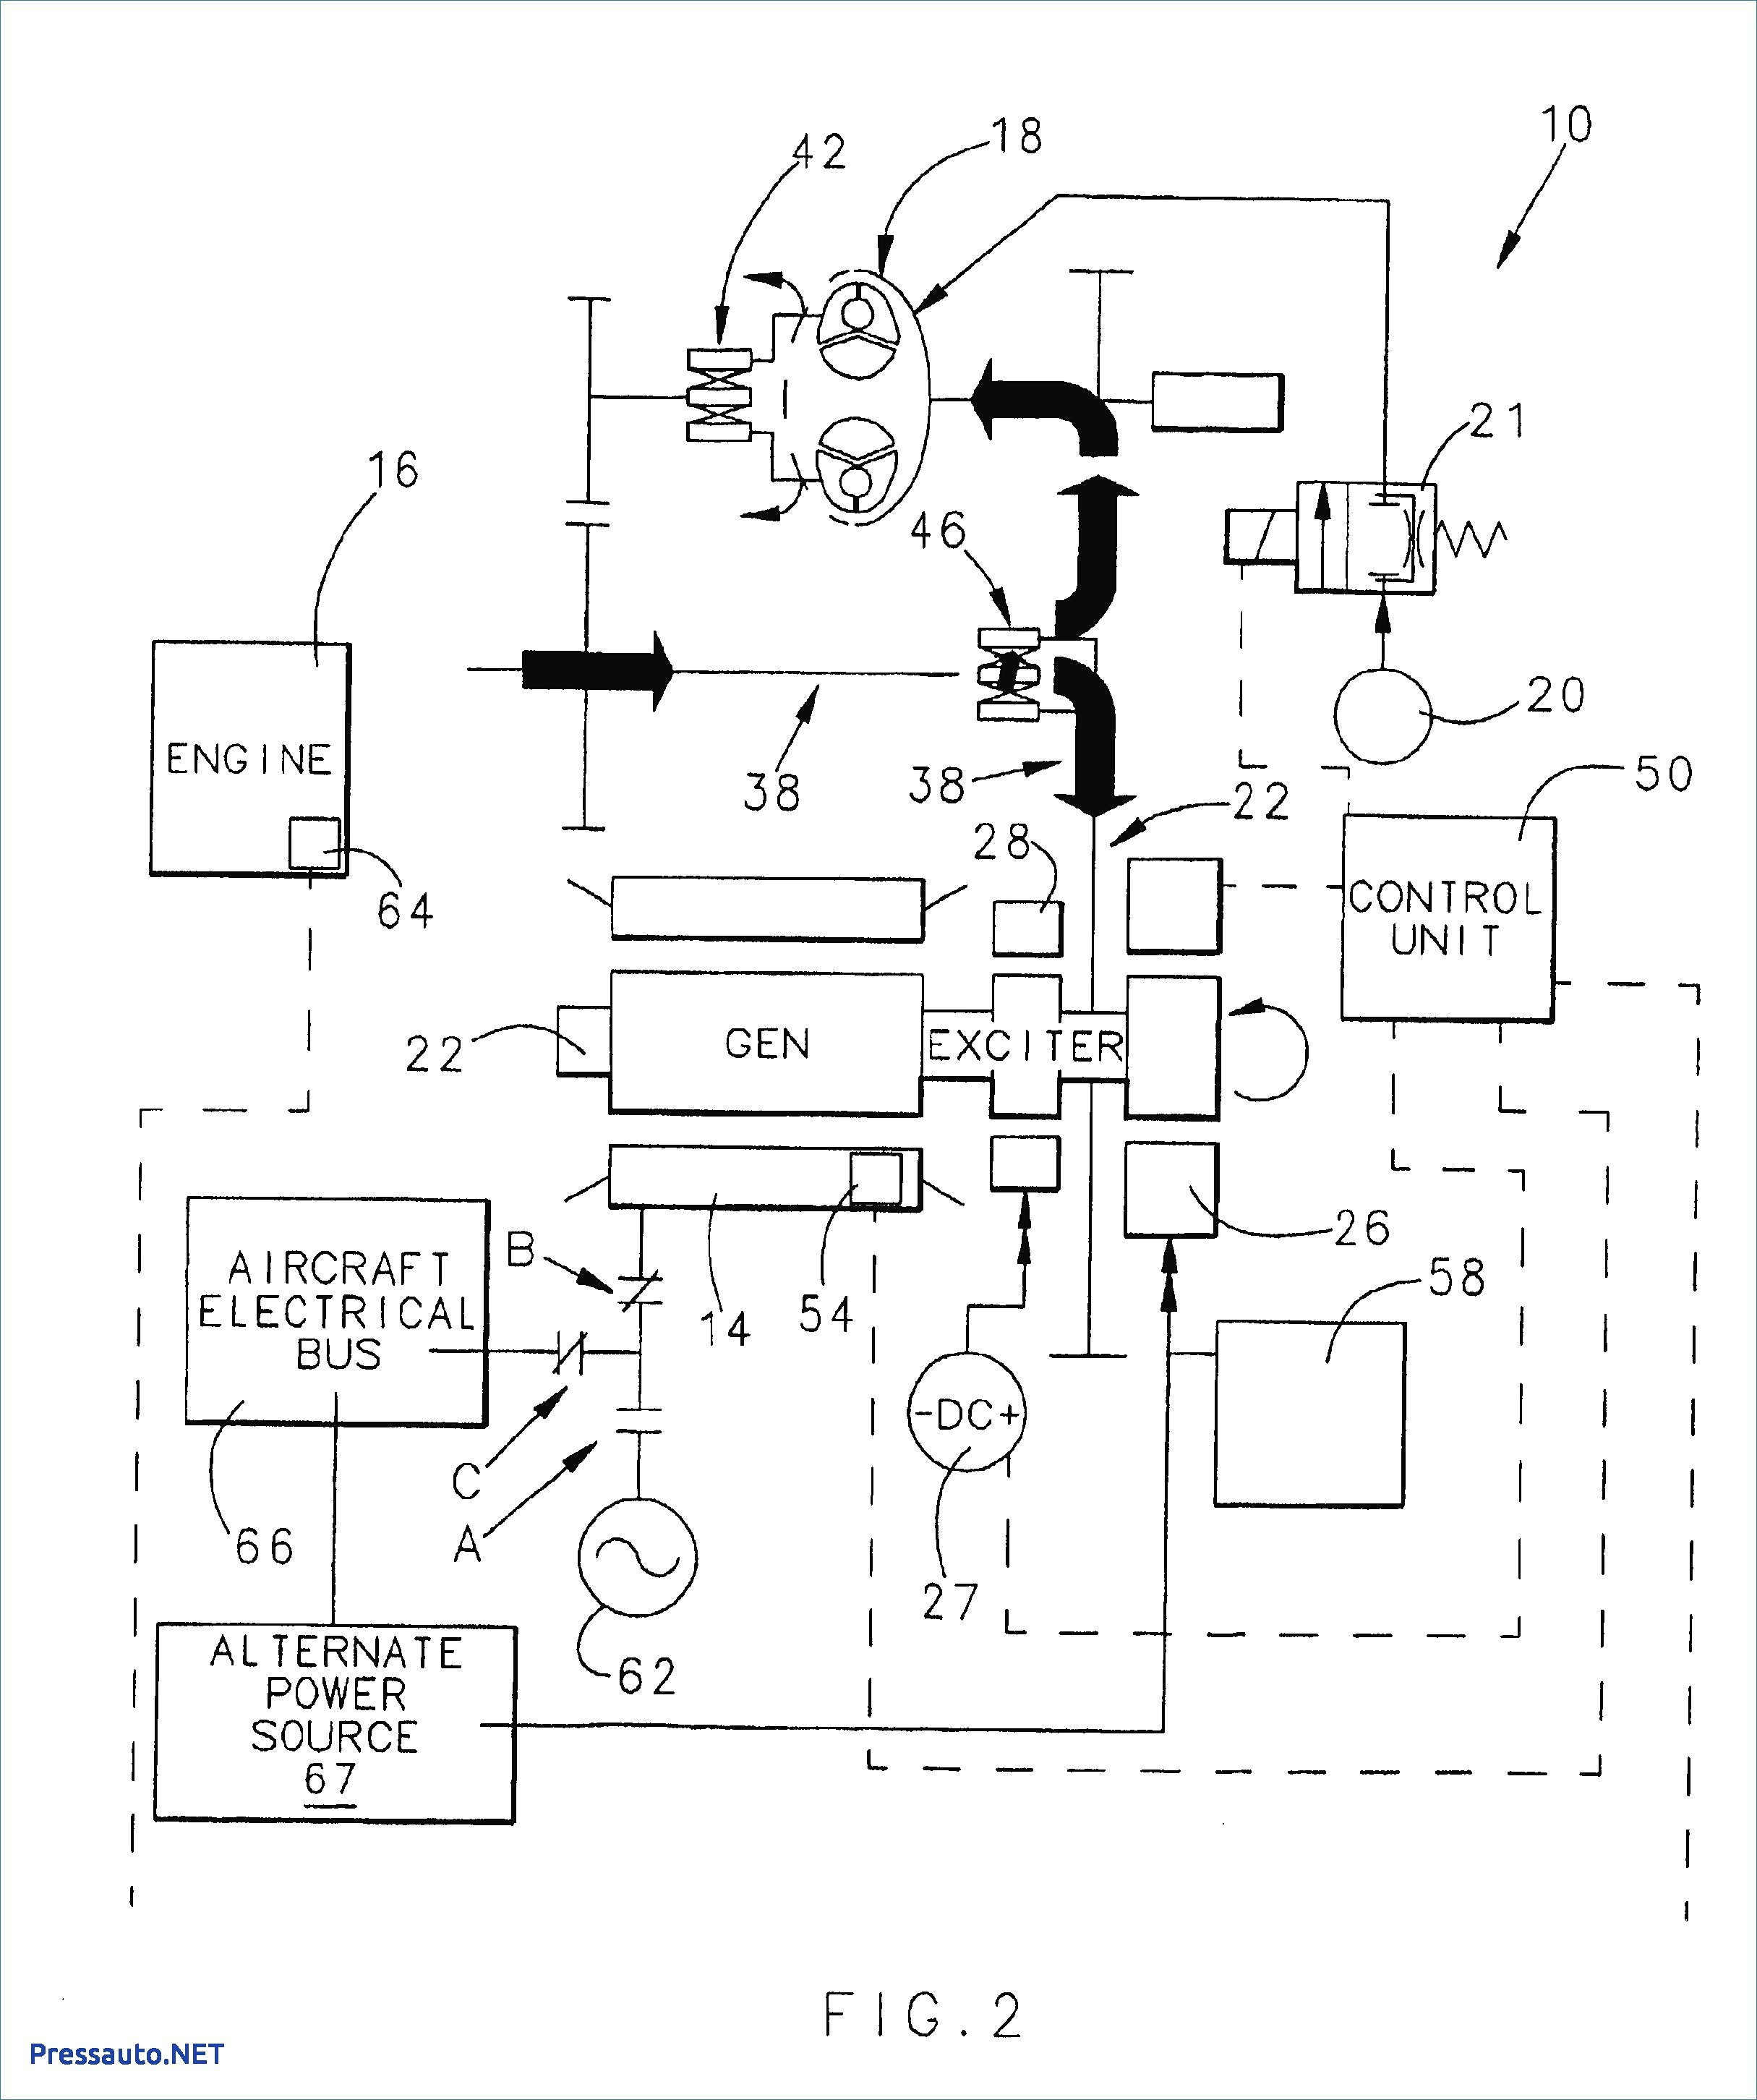 Mercedes Benz Engine Diagram 1966 Mercedes 230s Wiring Wiring Diagrams • Of Mercedes Benz Engine Diagram Mercedes Benz Cruise Control Wiring Diagram Data Wiring Diagrams •